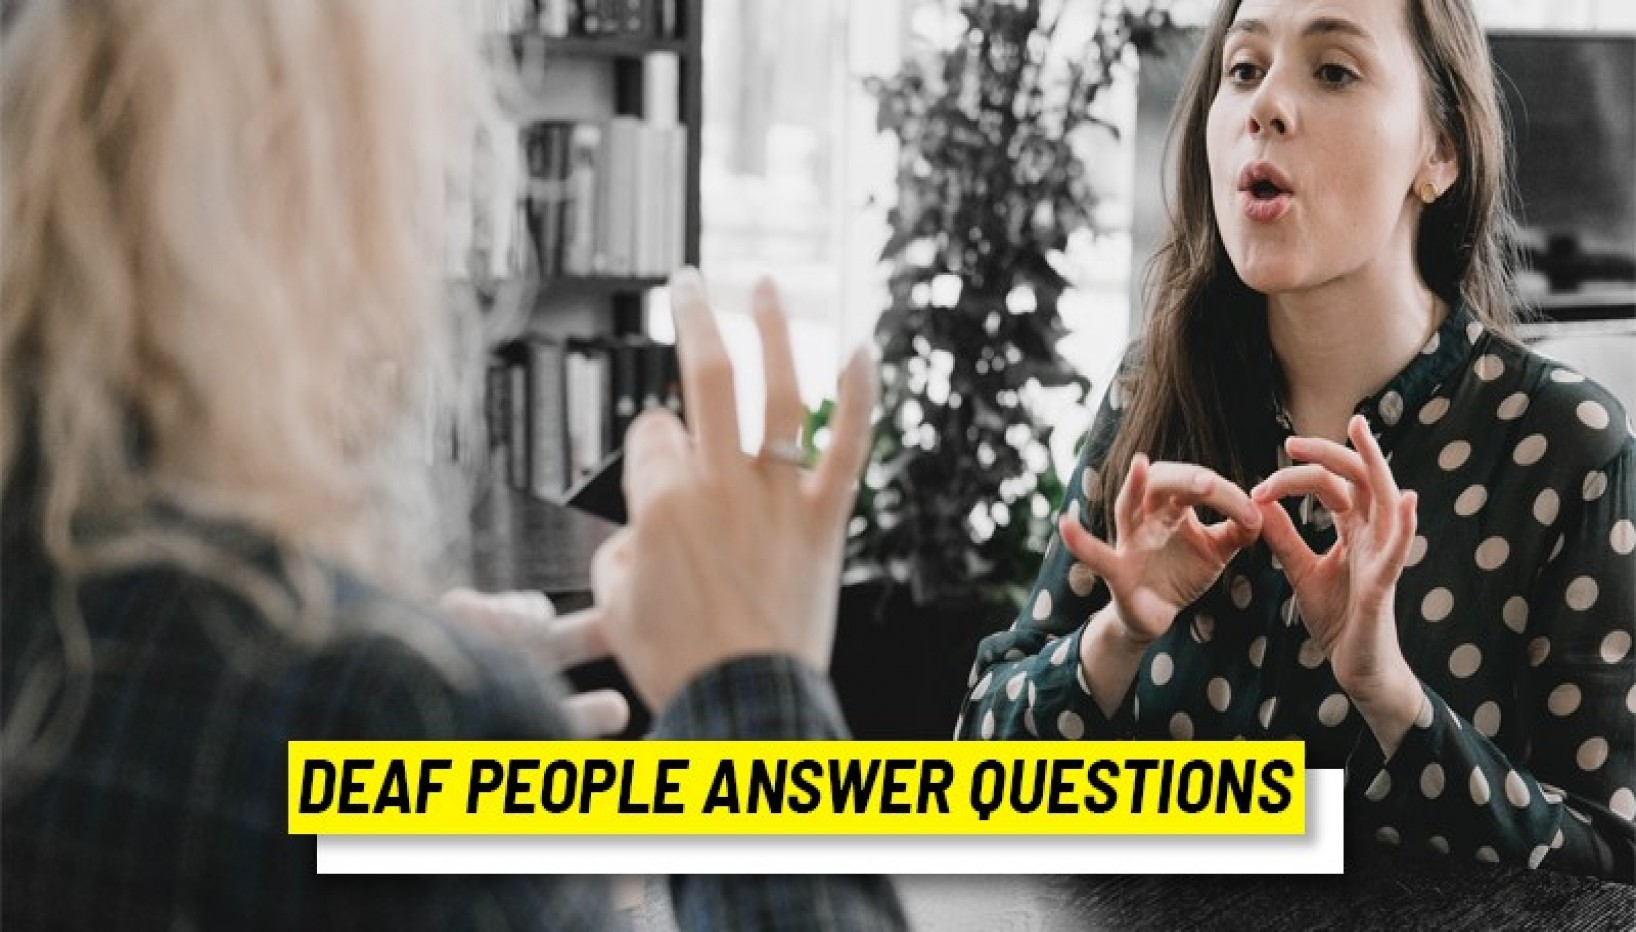 Deaf People Share Some Common Problems They Encounter And Its Really Eye-Opening As To How Difficult Living With A Disability Is